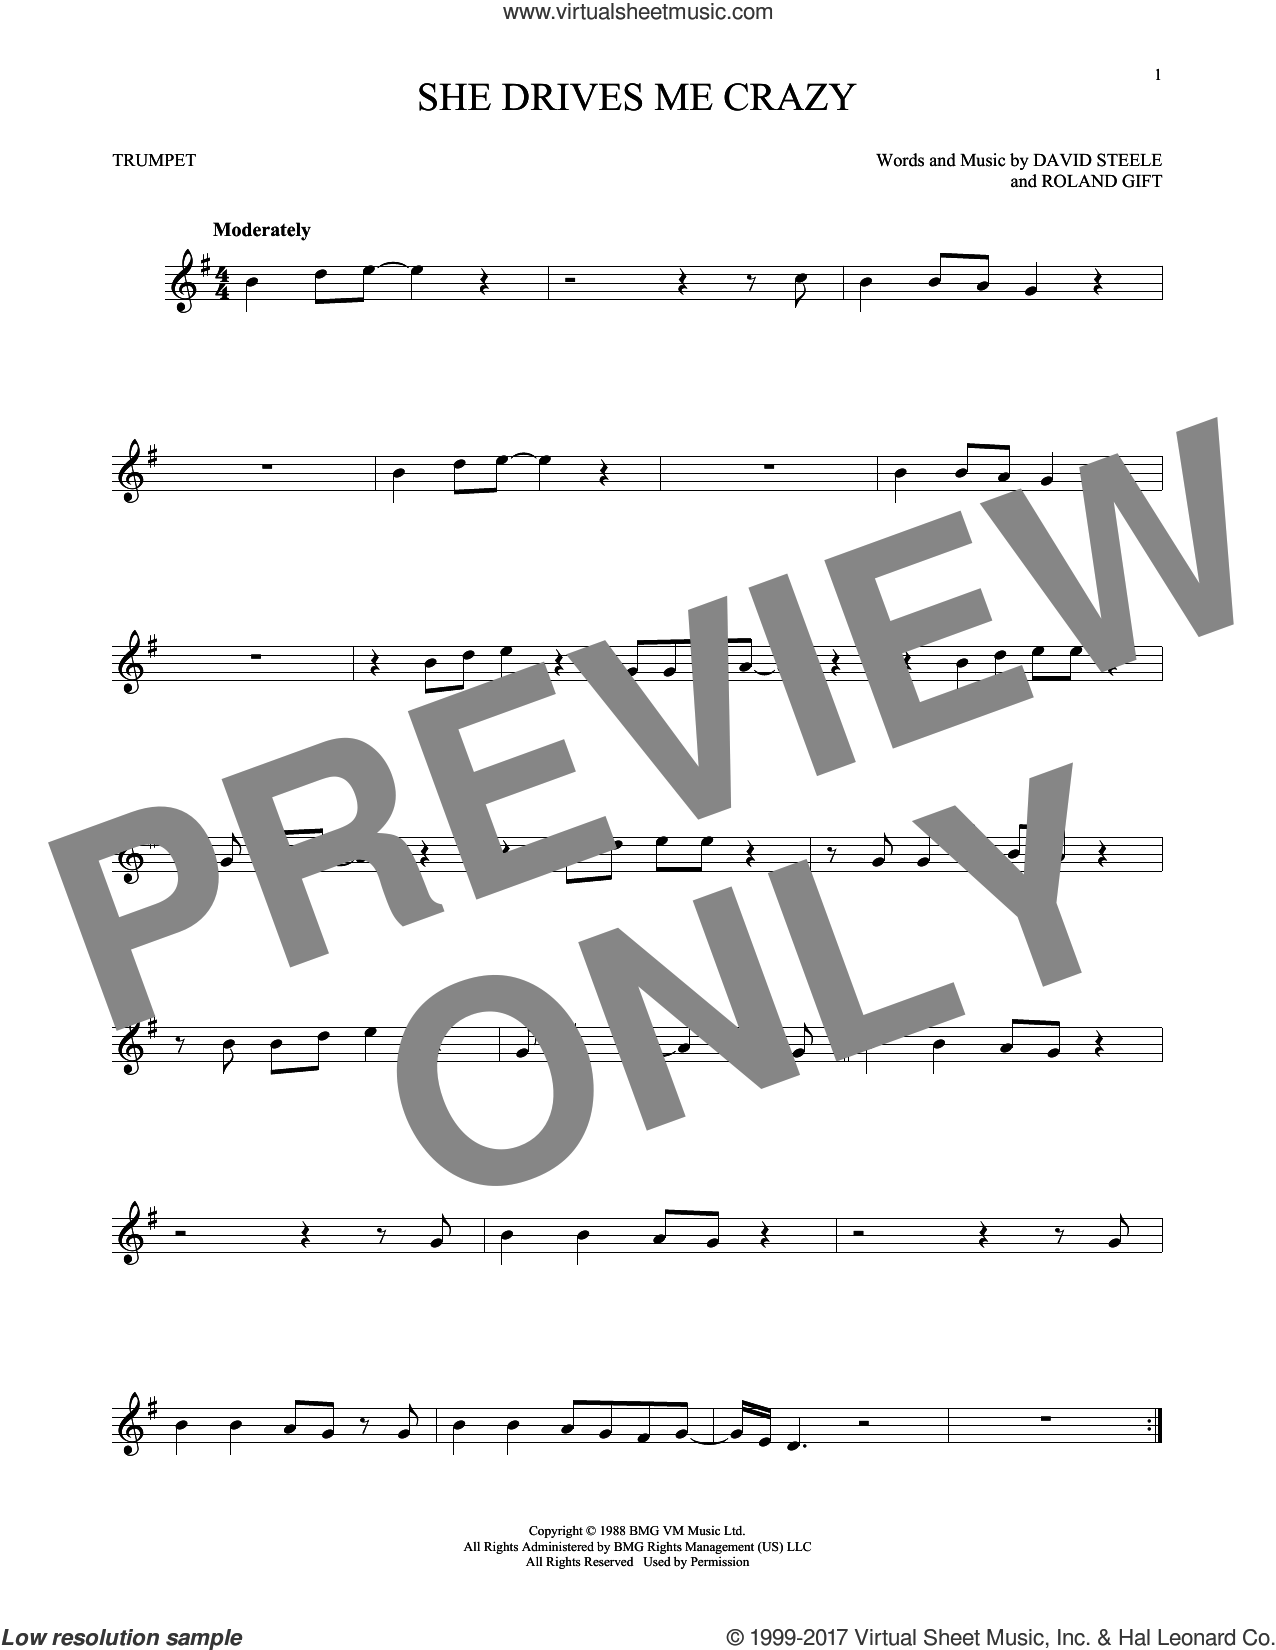 She Drives Me Crazy sheet music for trumpet solo by Fine Young Cannibals, David Steele and Roland Gift, intermediate skill level